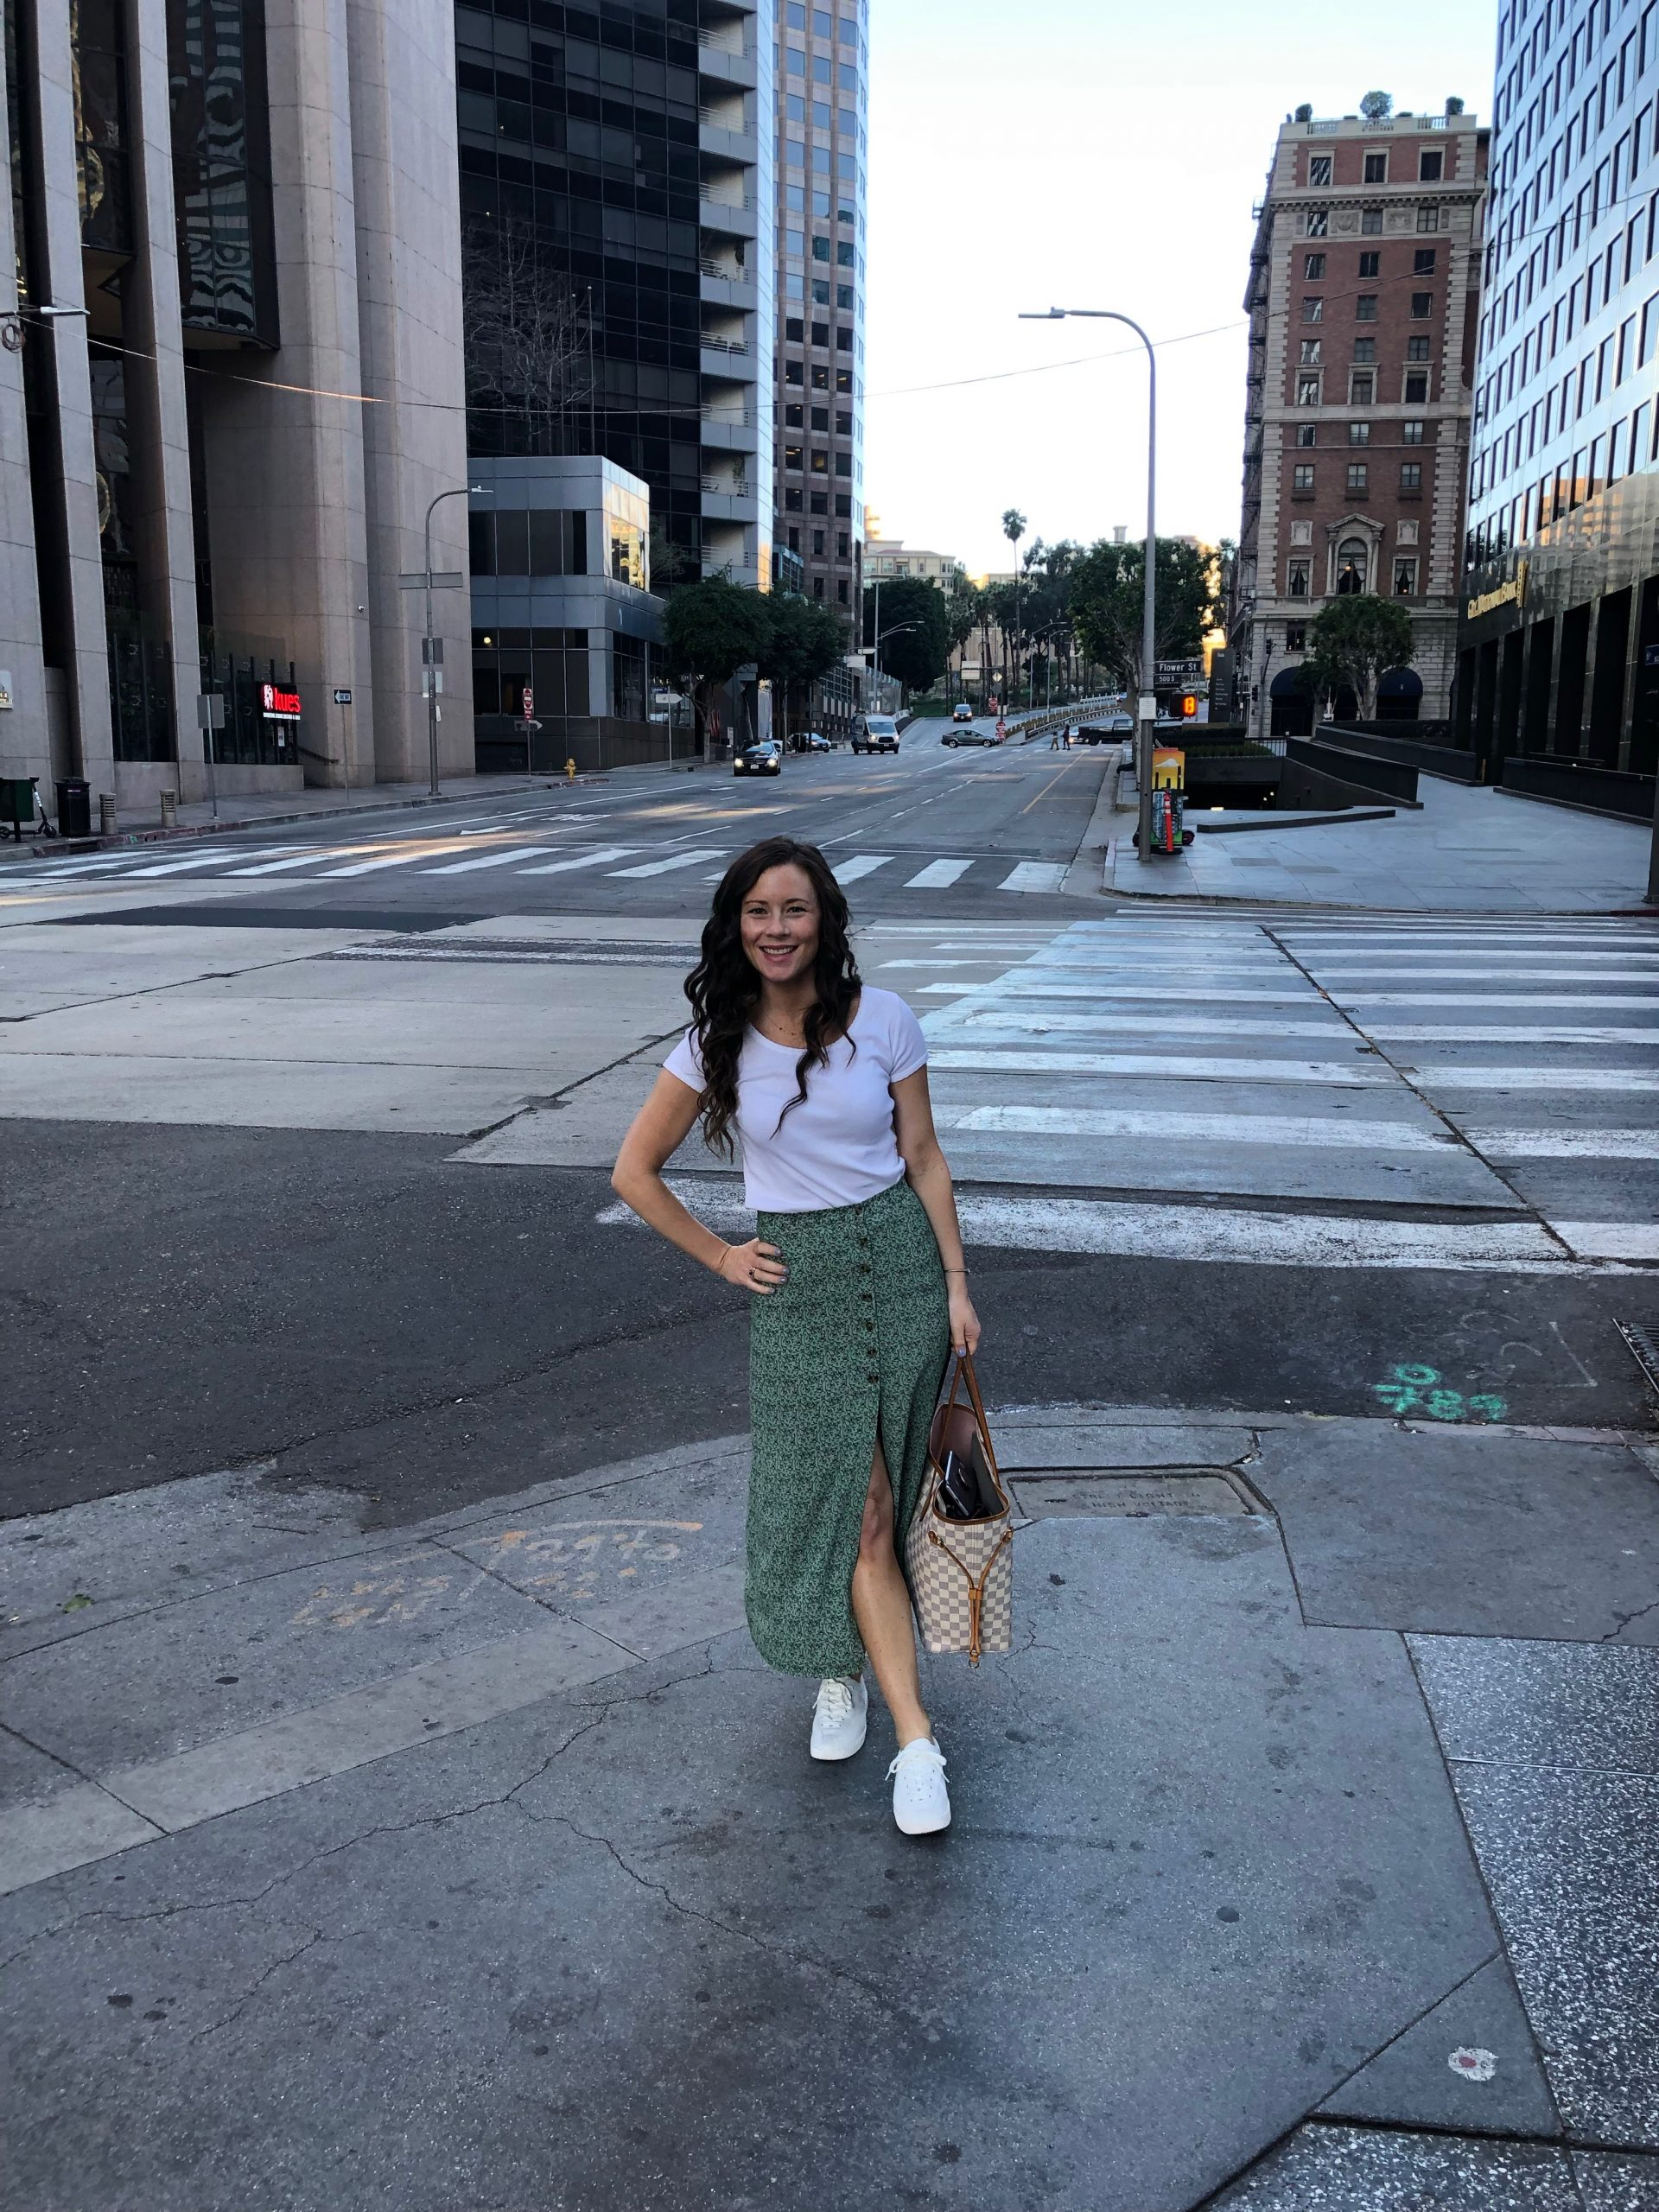 woman standing on street in downtown LA wearing a white shirt, green skirt, white sneakers